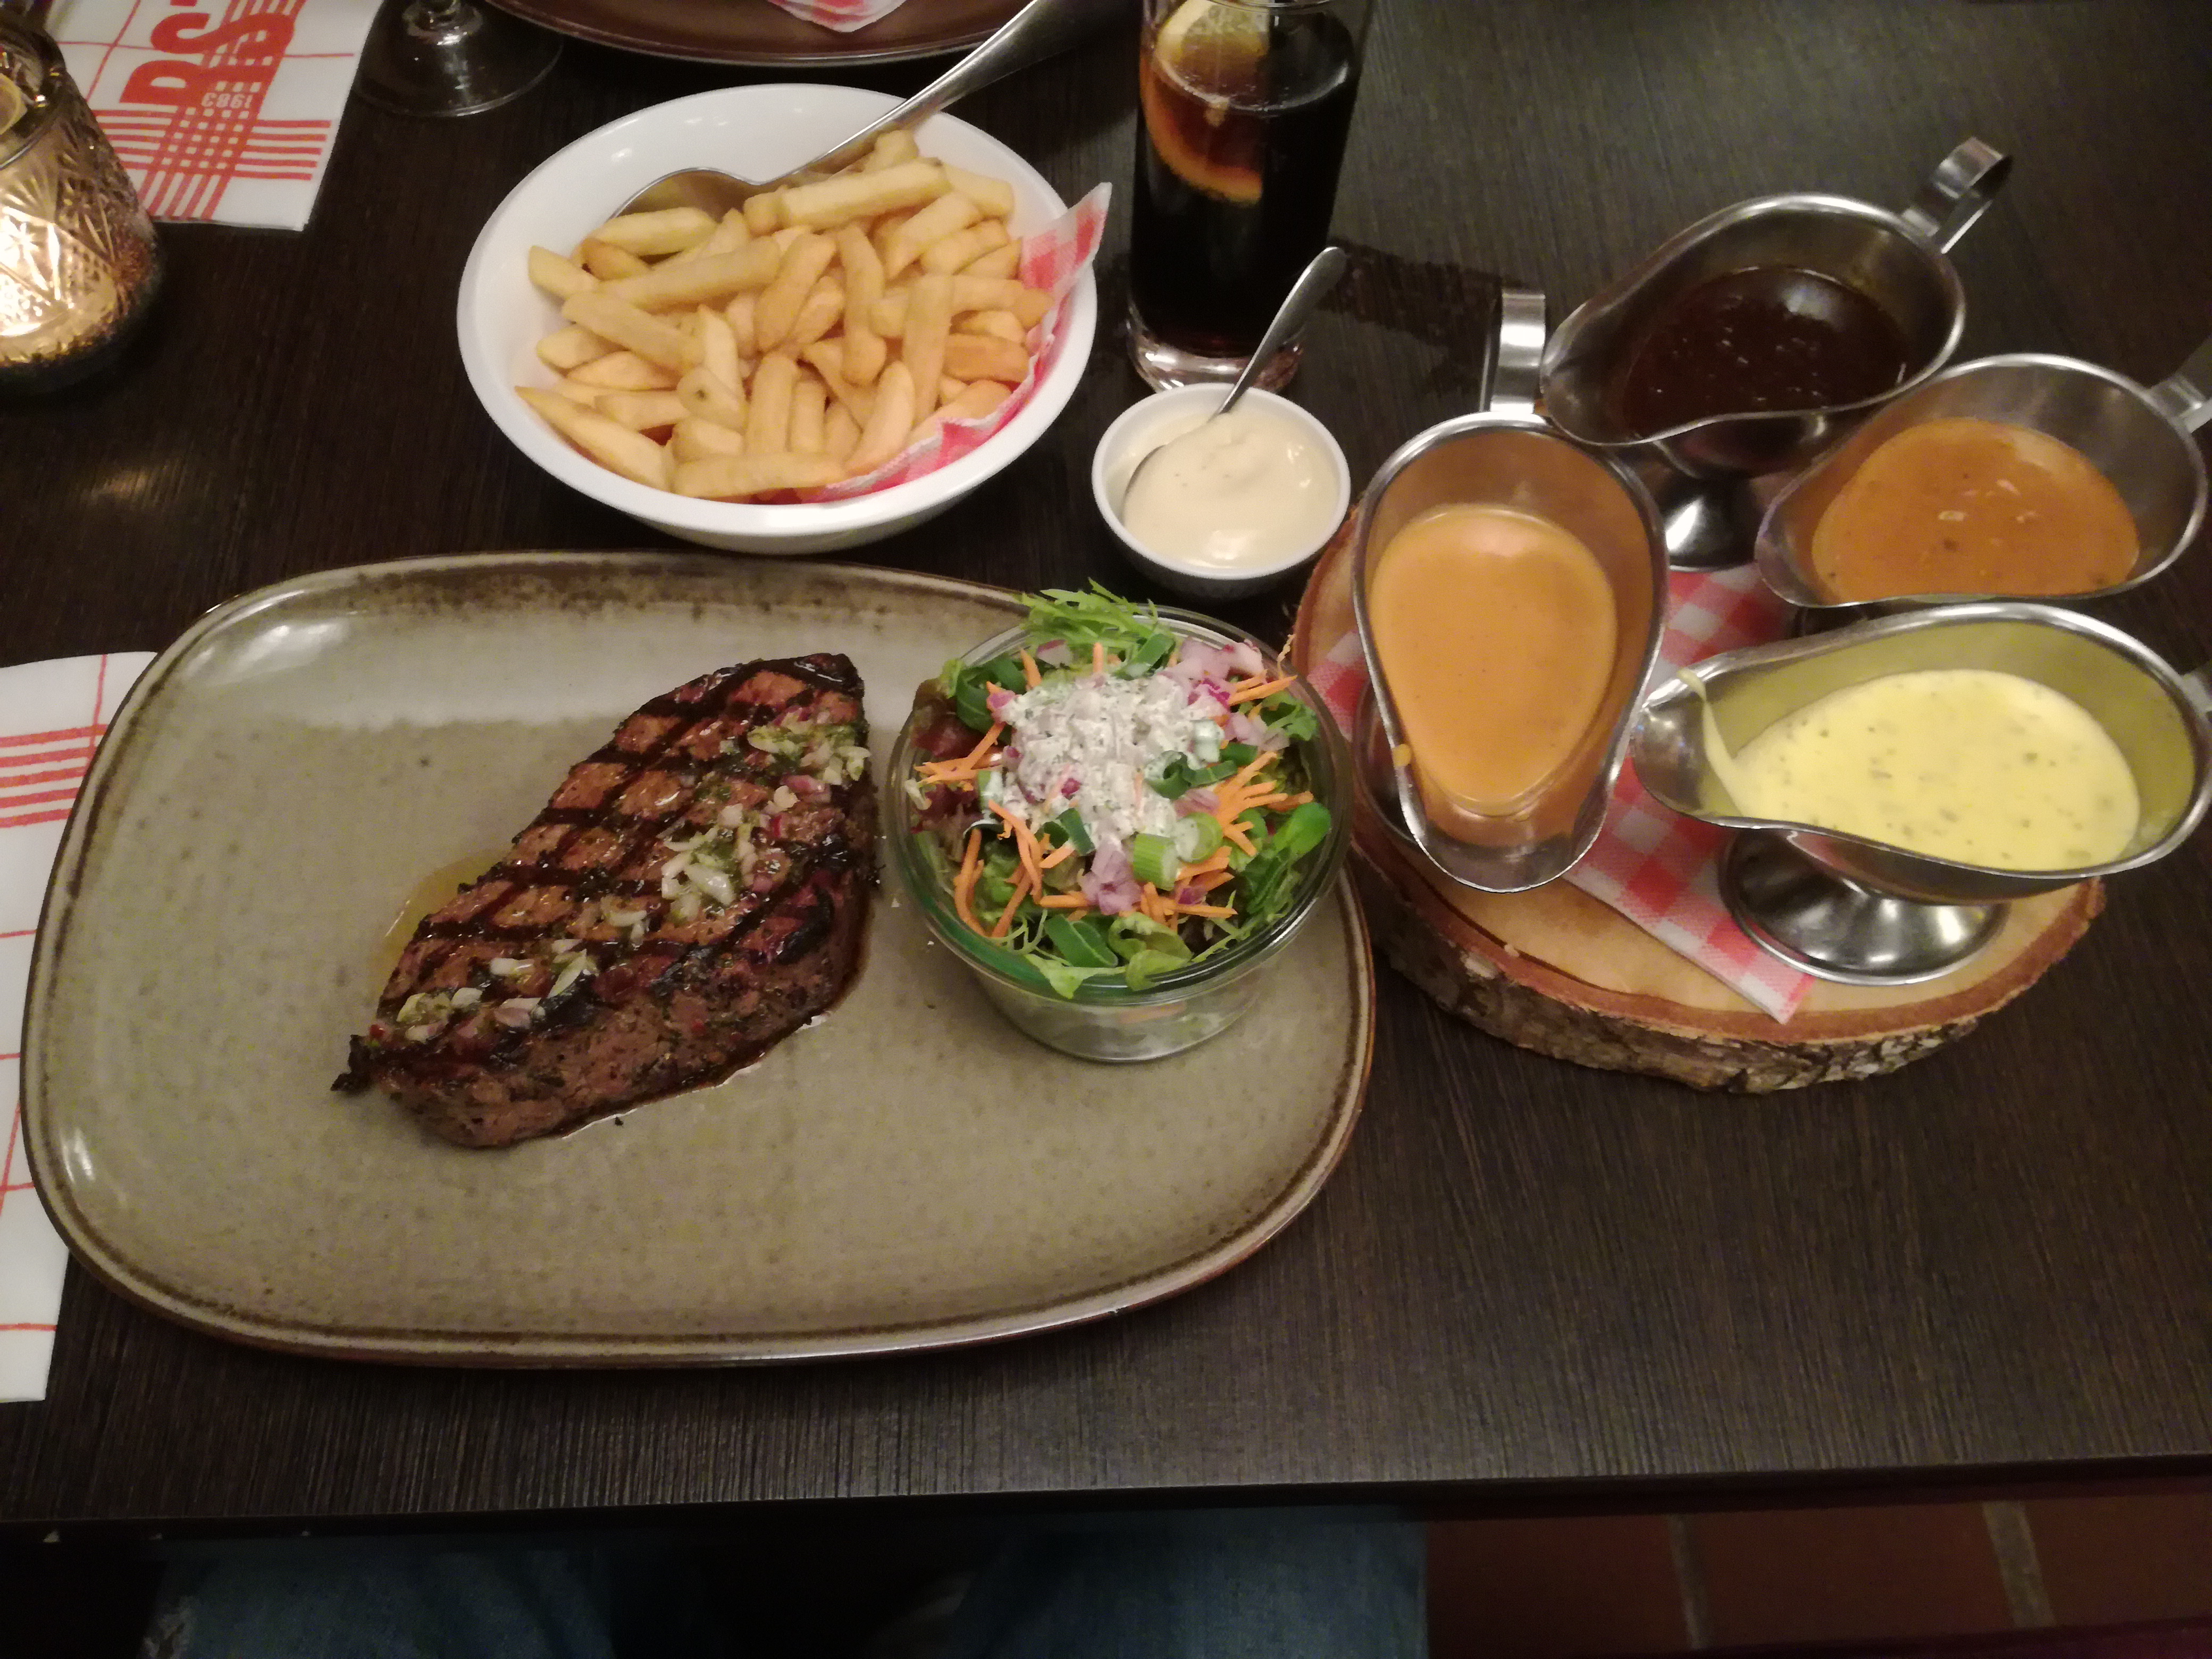 beste steak van belgie rusteel